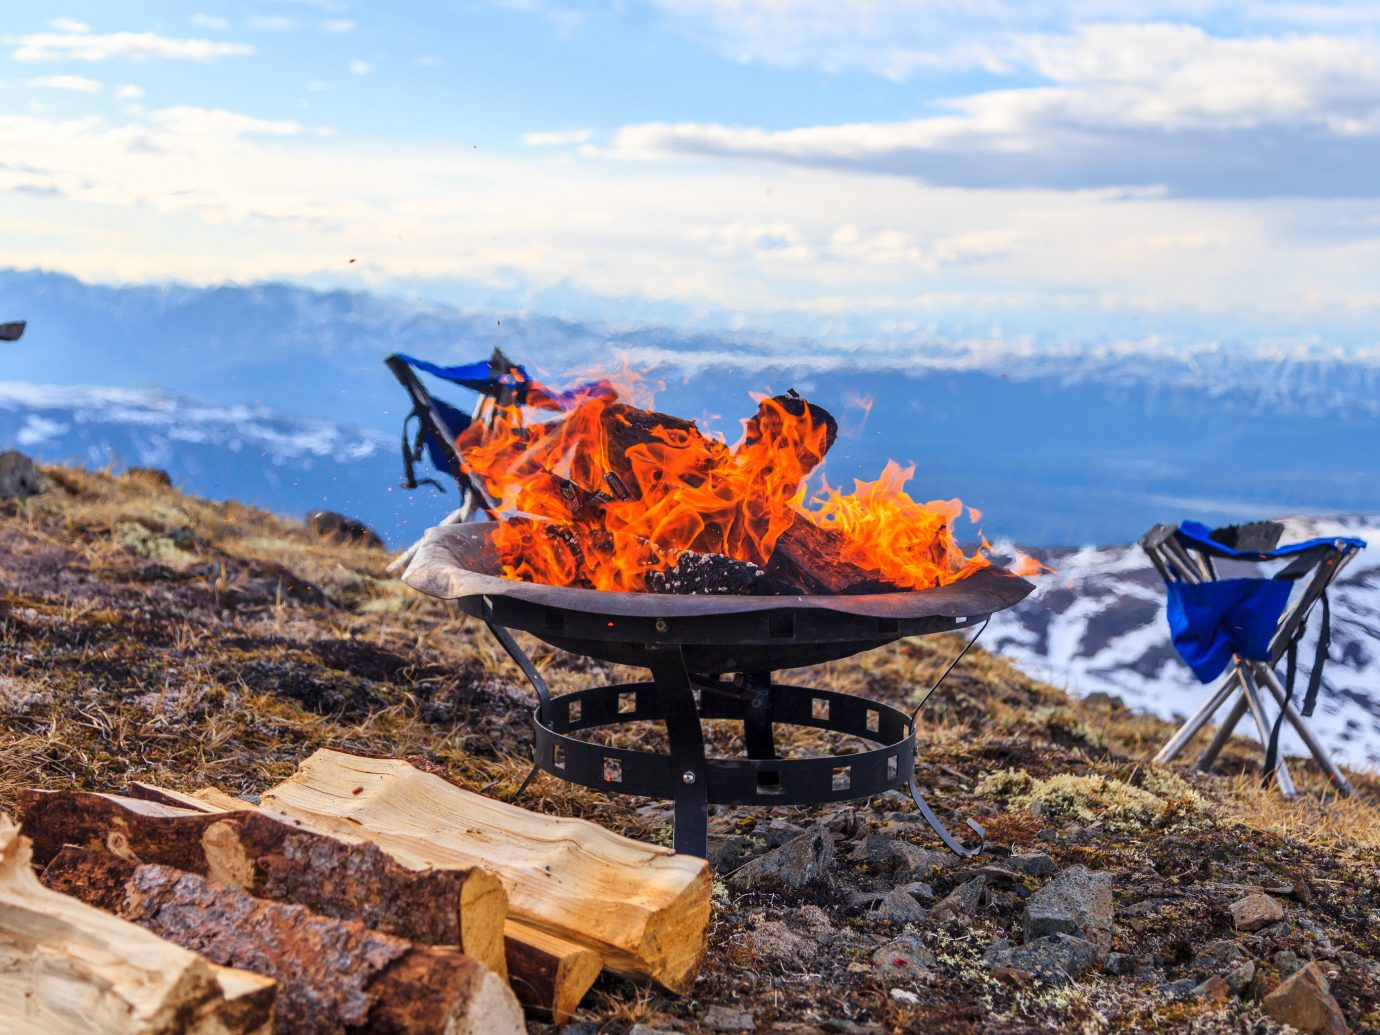 Hotels sky outdoor wilderness mountain geological phenomenon season Winter seat vehicle landscape chair mountain range Sea snow geology autumn mountaineering